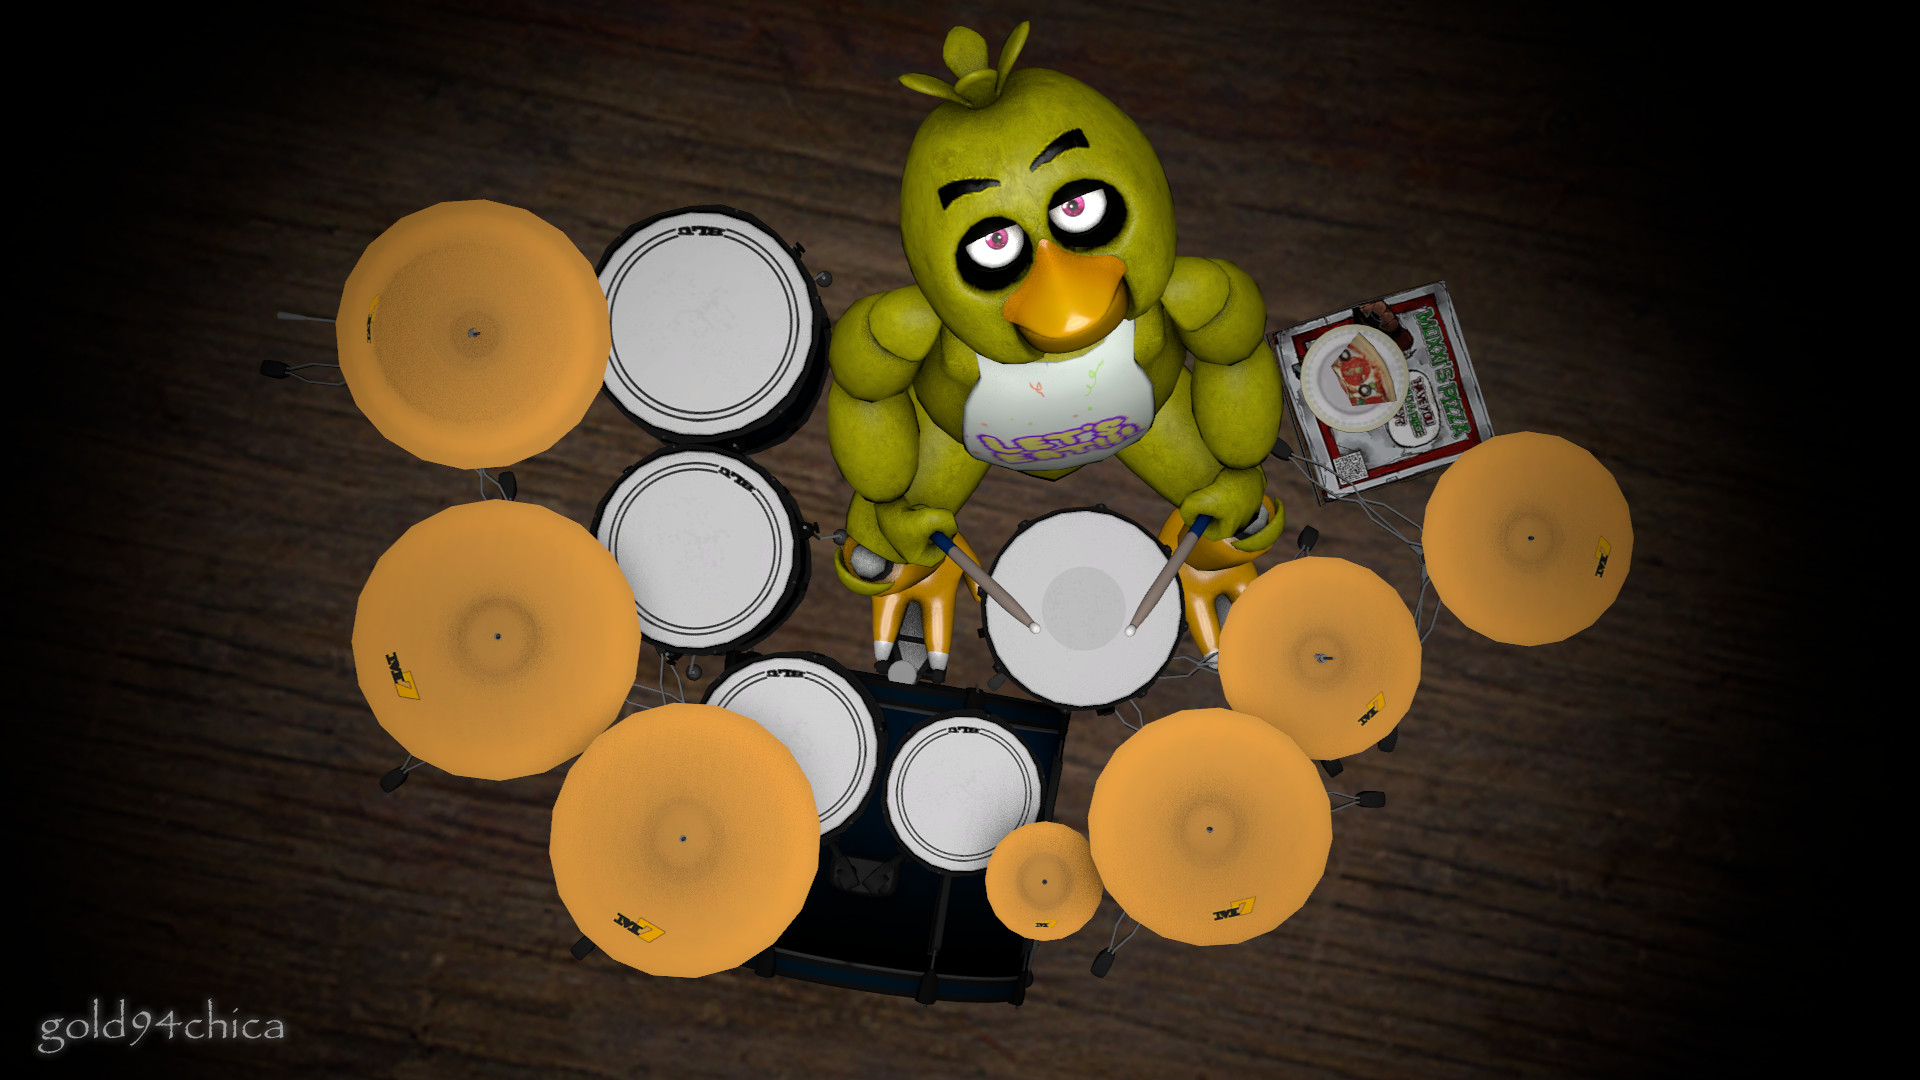 Five Nights At Freddy's favourites by CloudSorcerer28 on DeviantArt